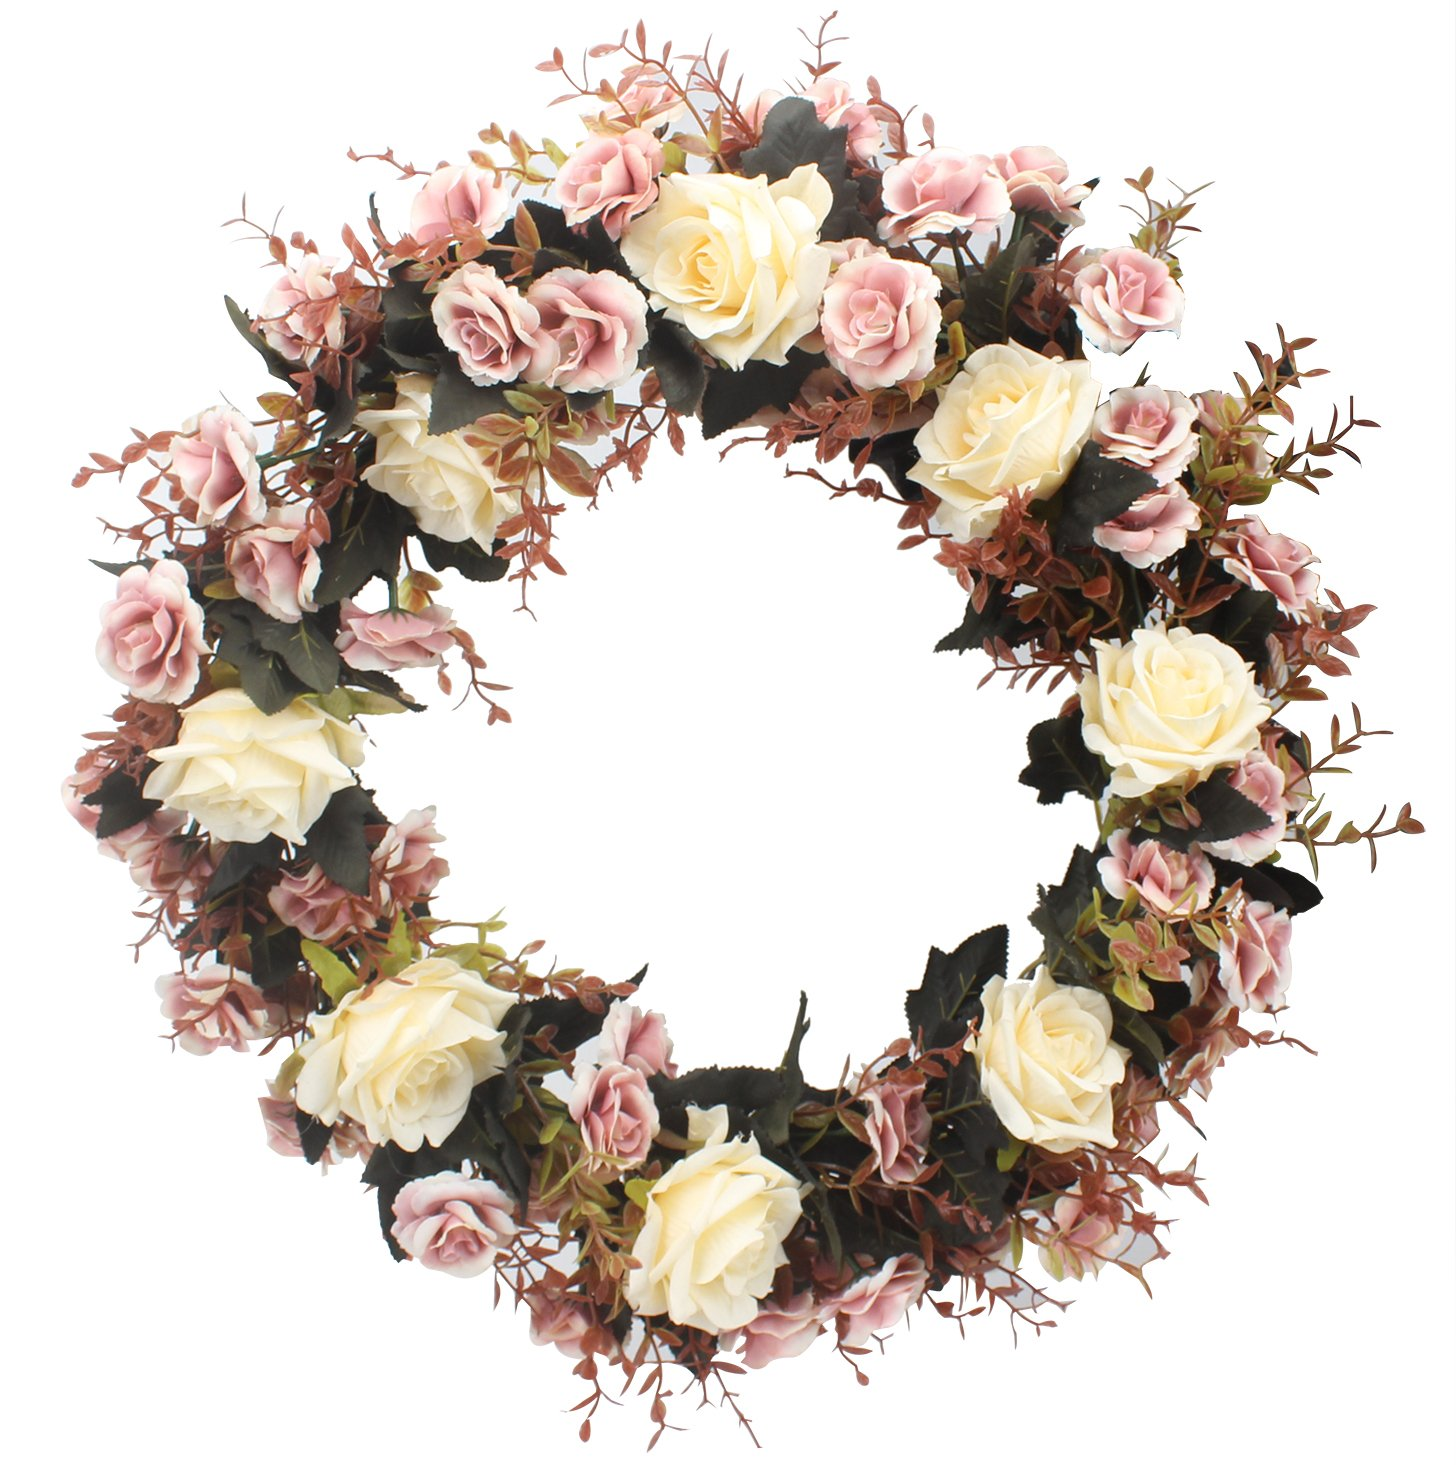 Duovlo-Rose-Floral-Twig-Wreath-19-Inch-Handmade-Artificial-Flowers-Garland-Front-Door-Wreath